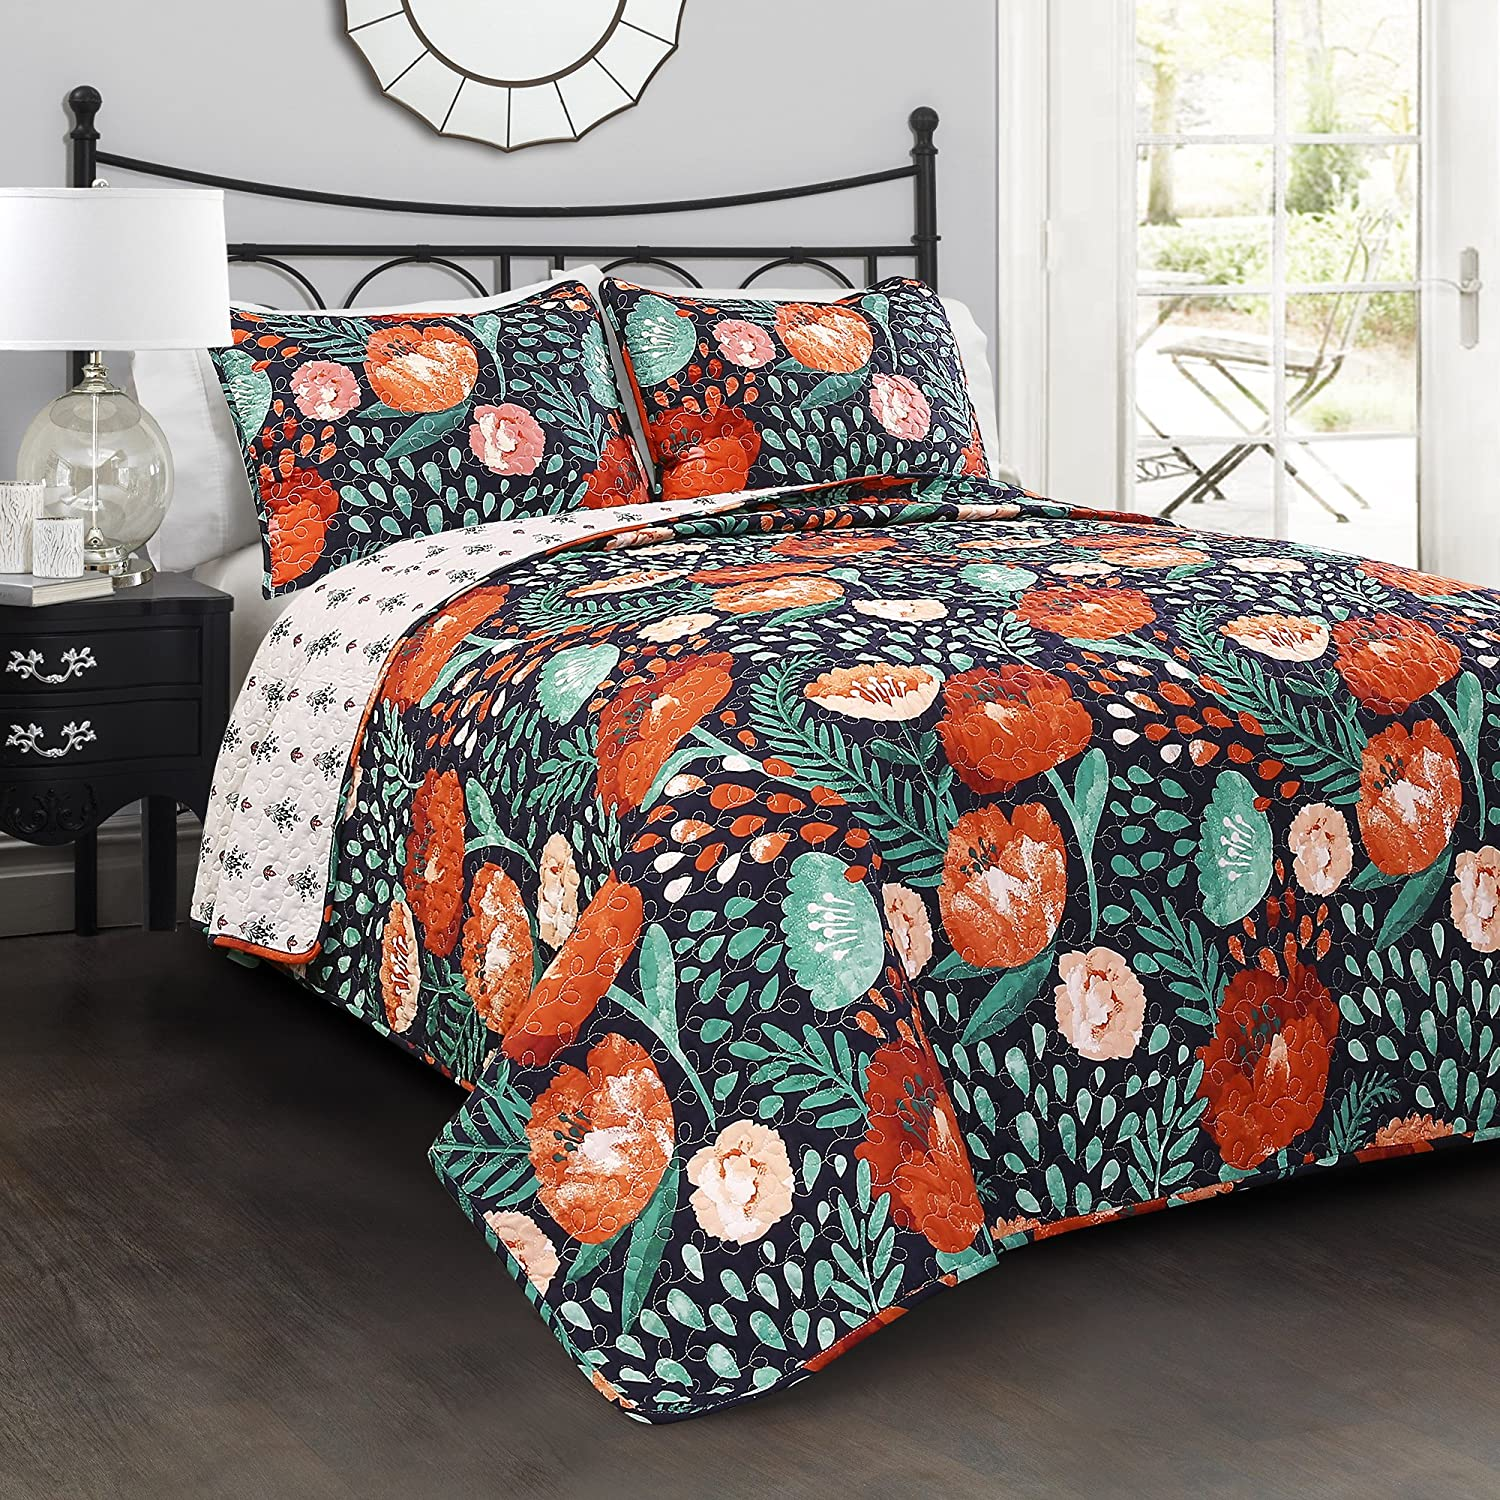 Lush Decor 3 Piece Poppy Garden Quilt Set, King, Navy